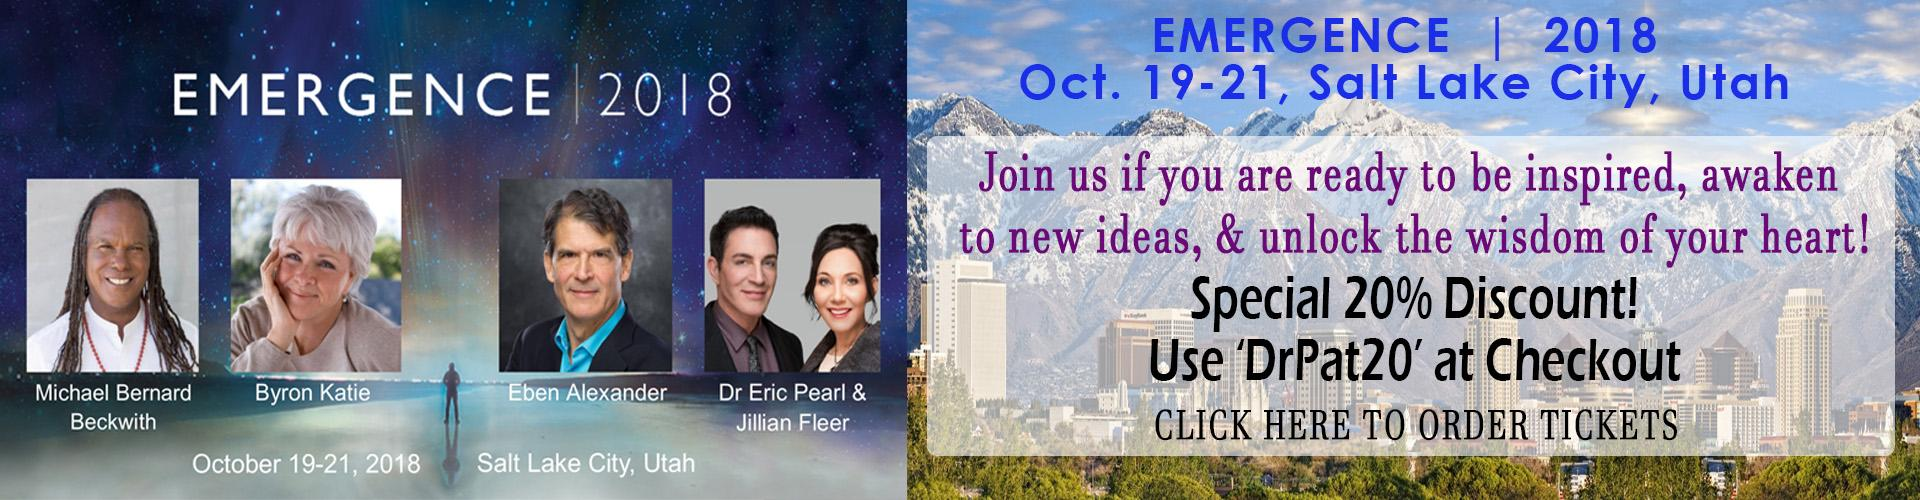 Emergence 2018: October 19-21, Salt Lake City, Utah